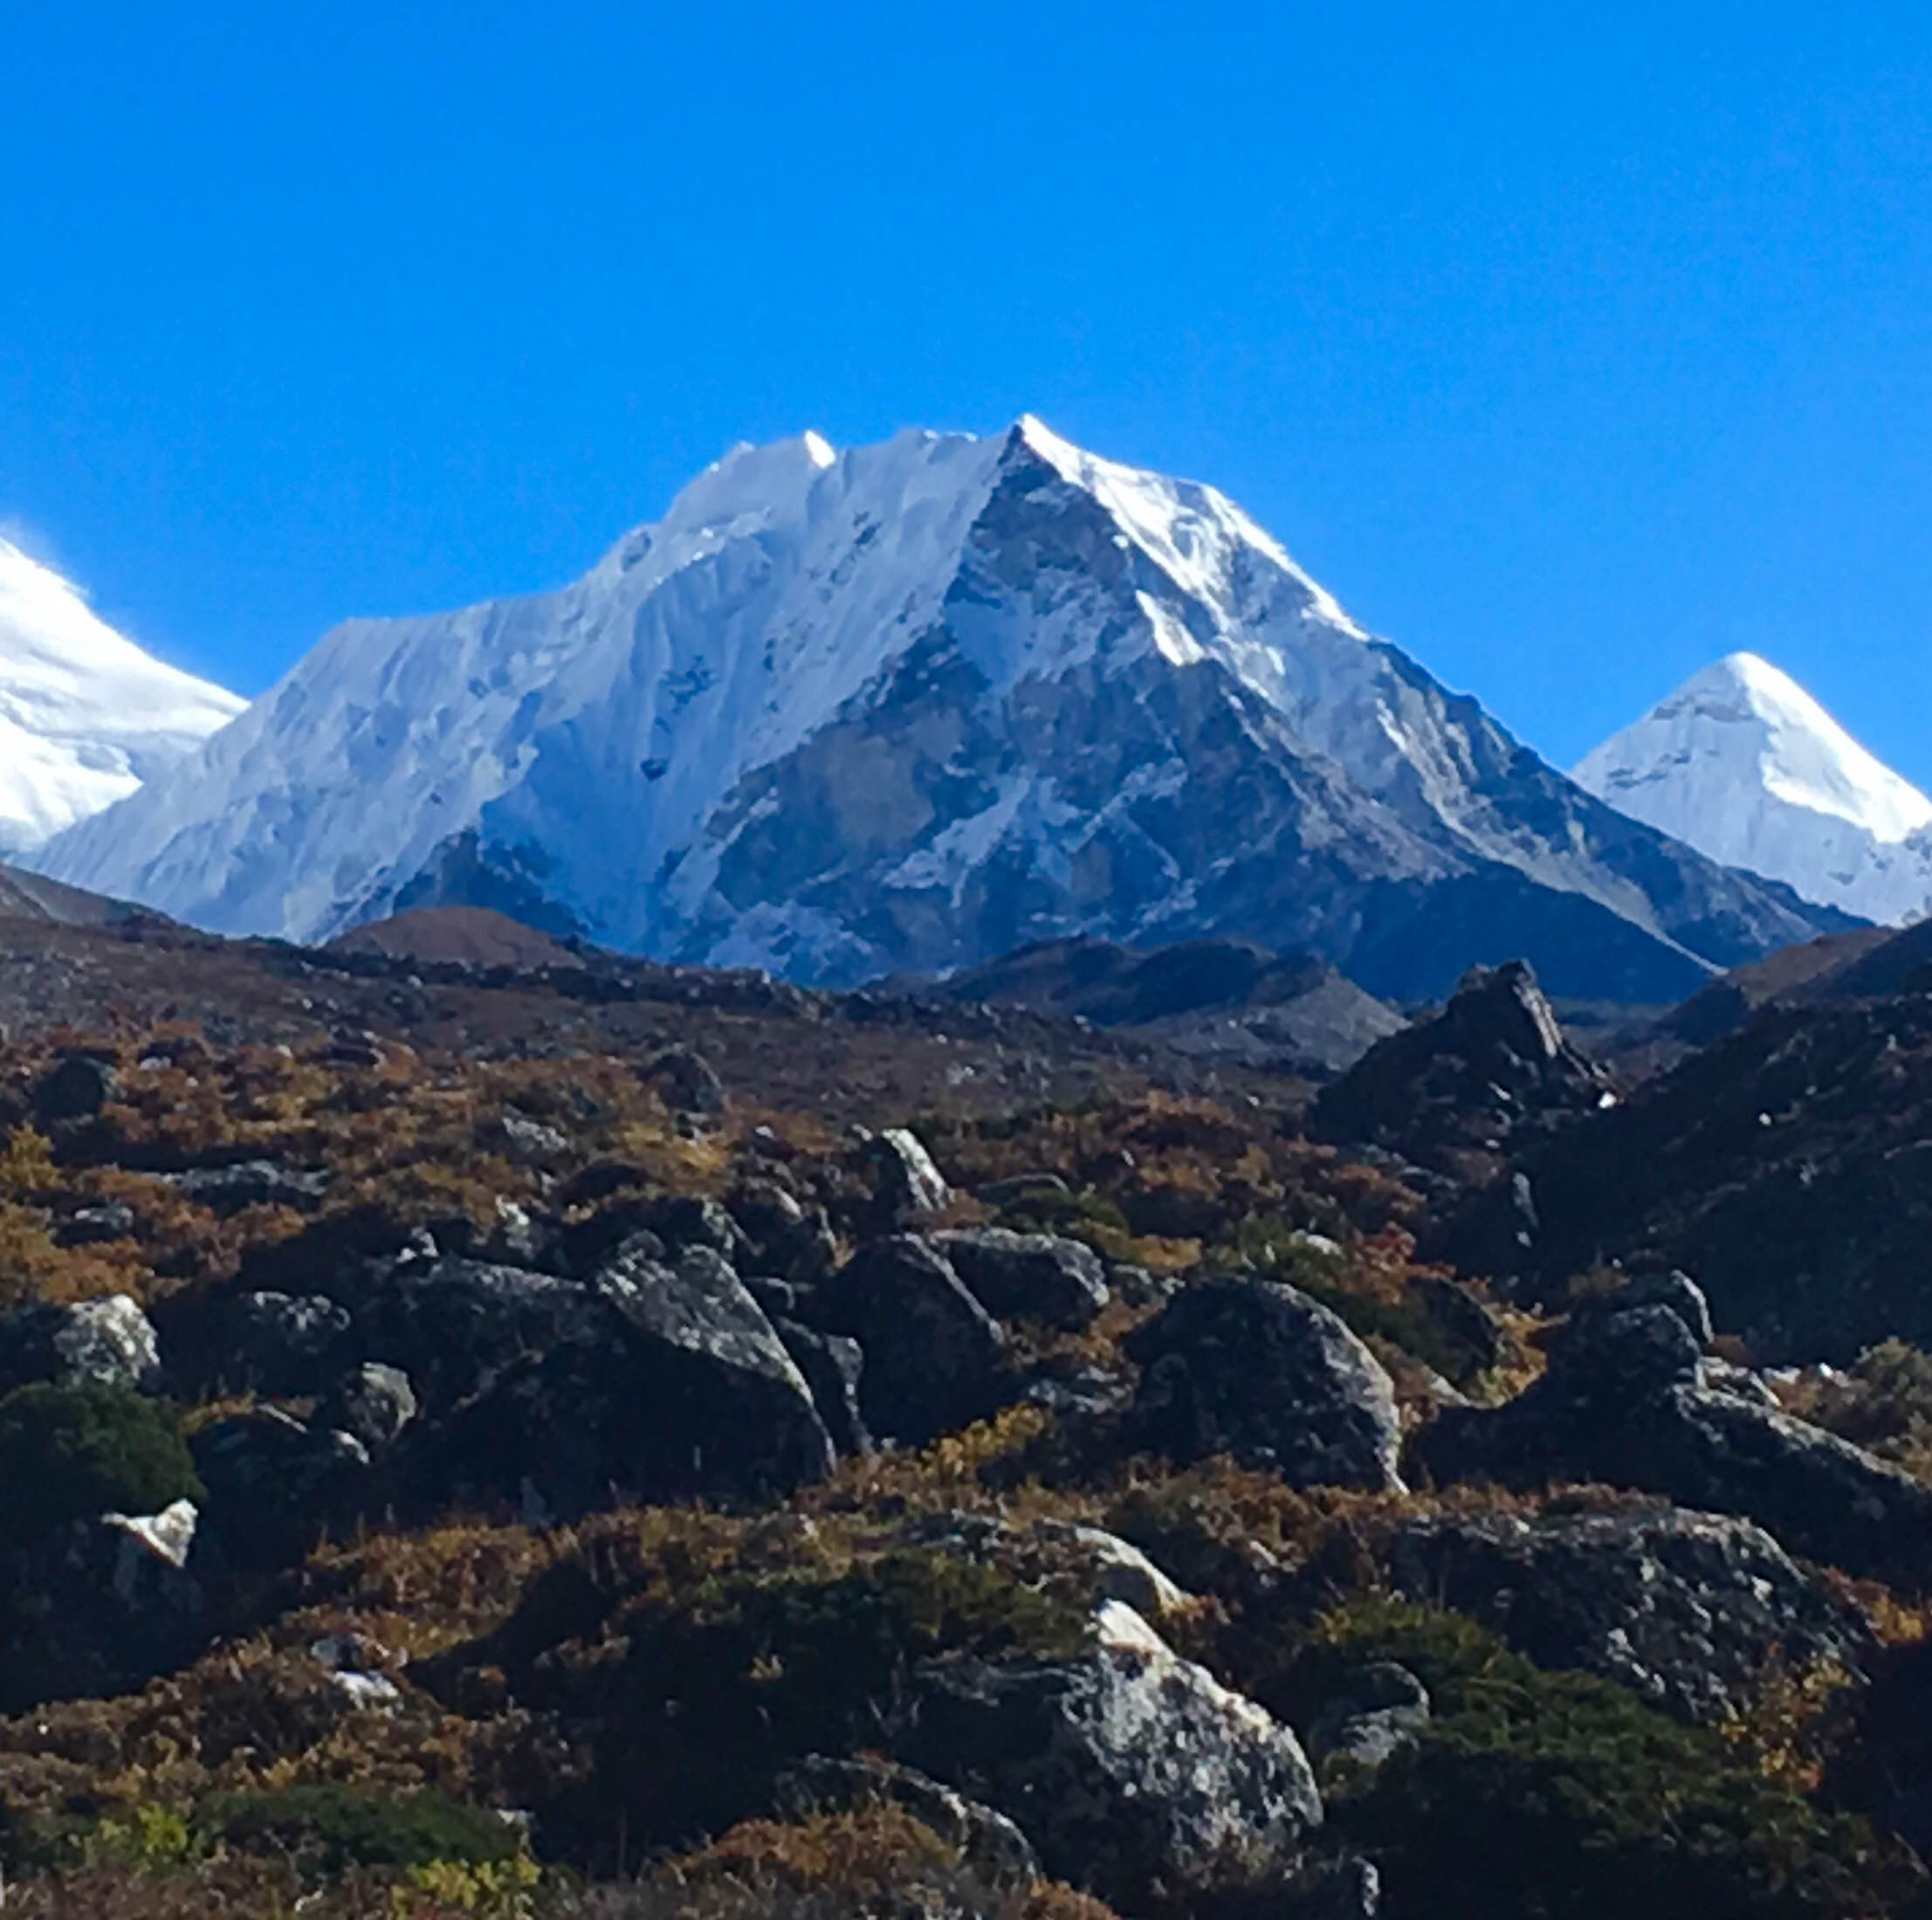 Everest Base Camp & Island Peak